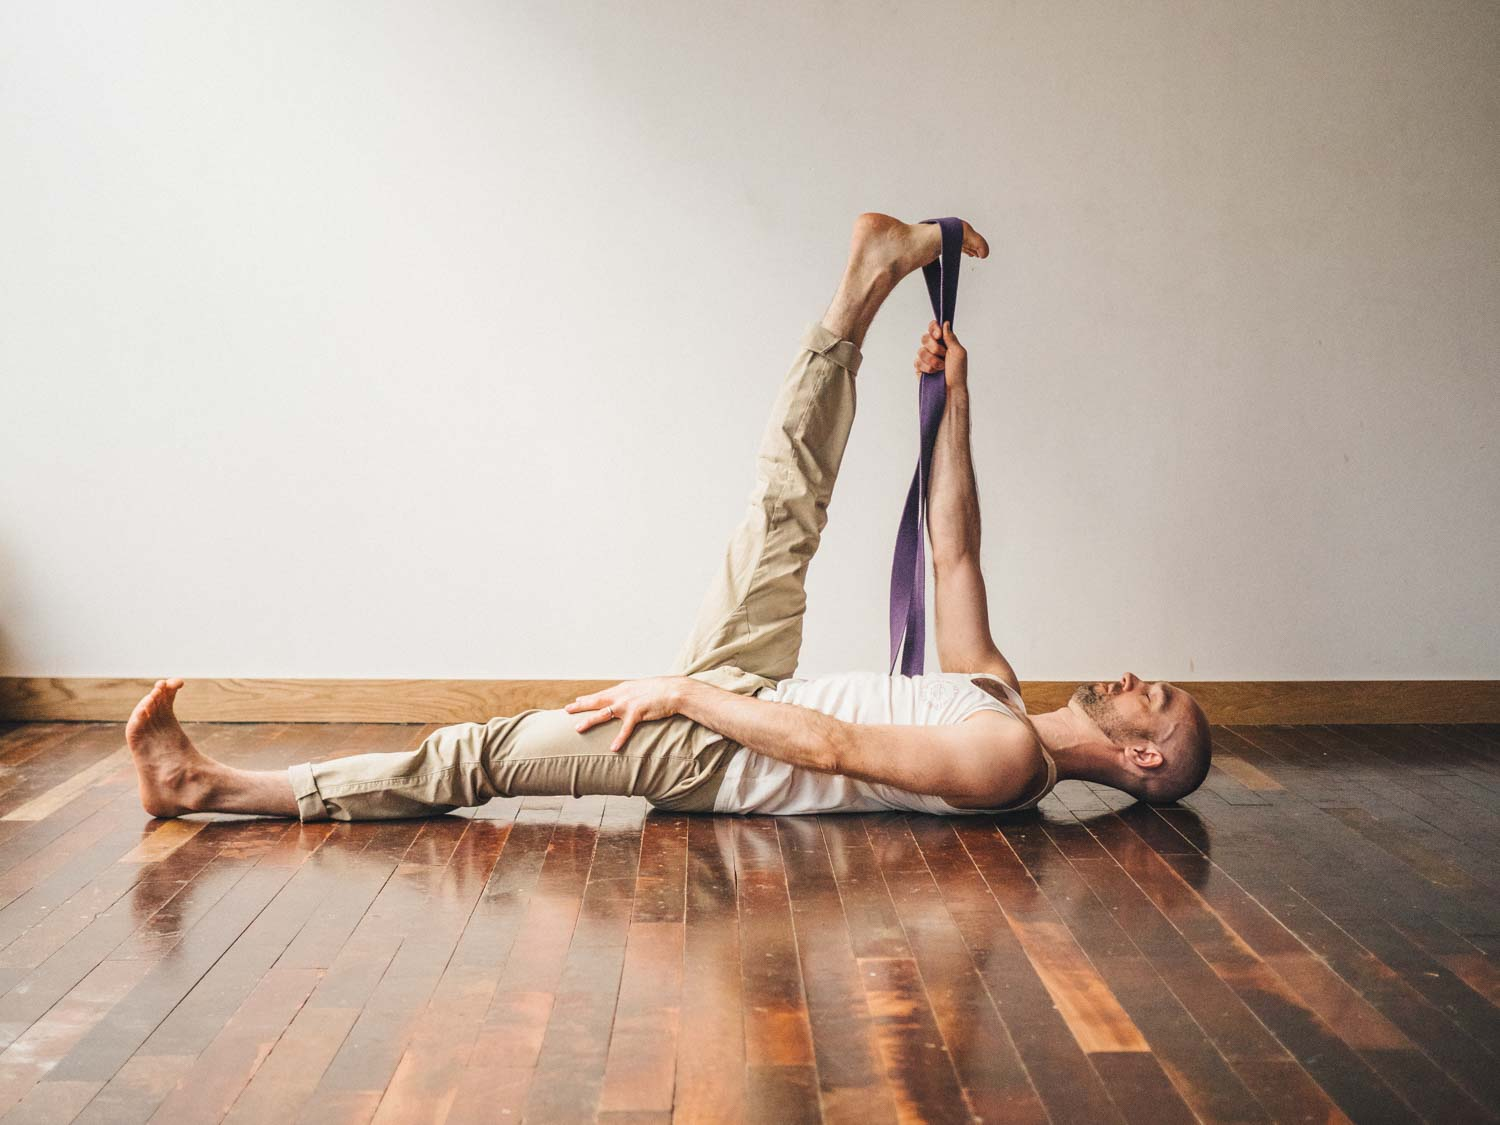 Man doing a strap assisted hamstring stretch